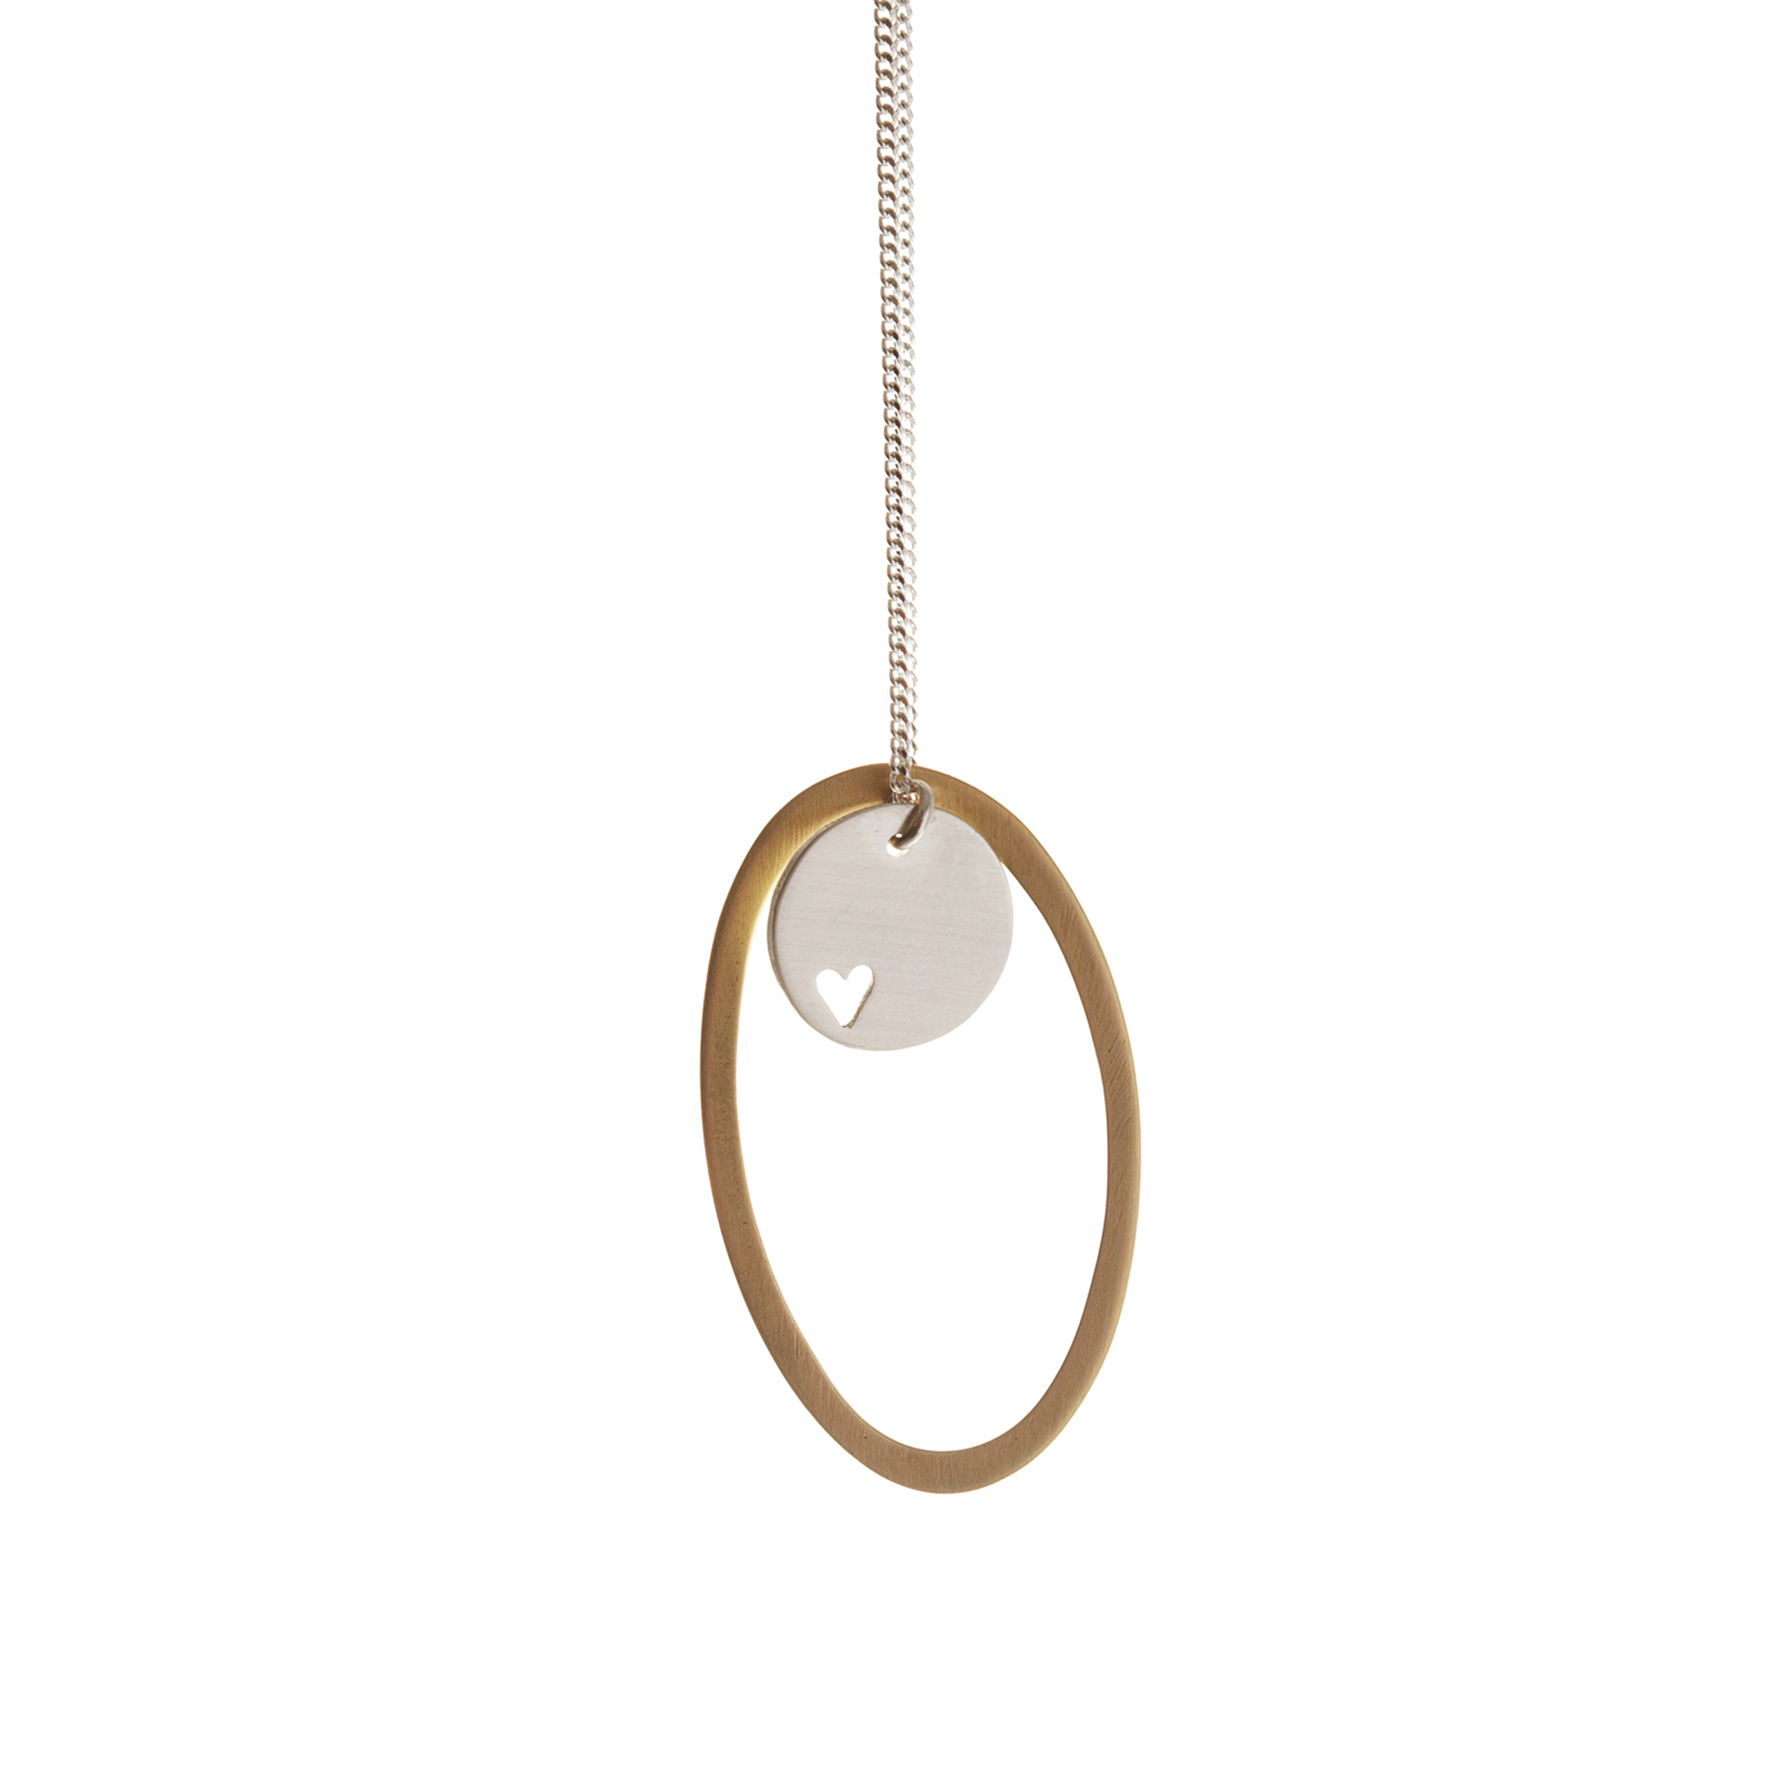 Brass loop with silver disc pendant